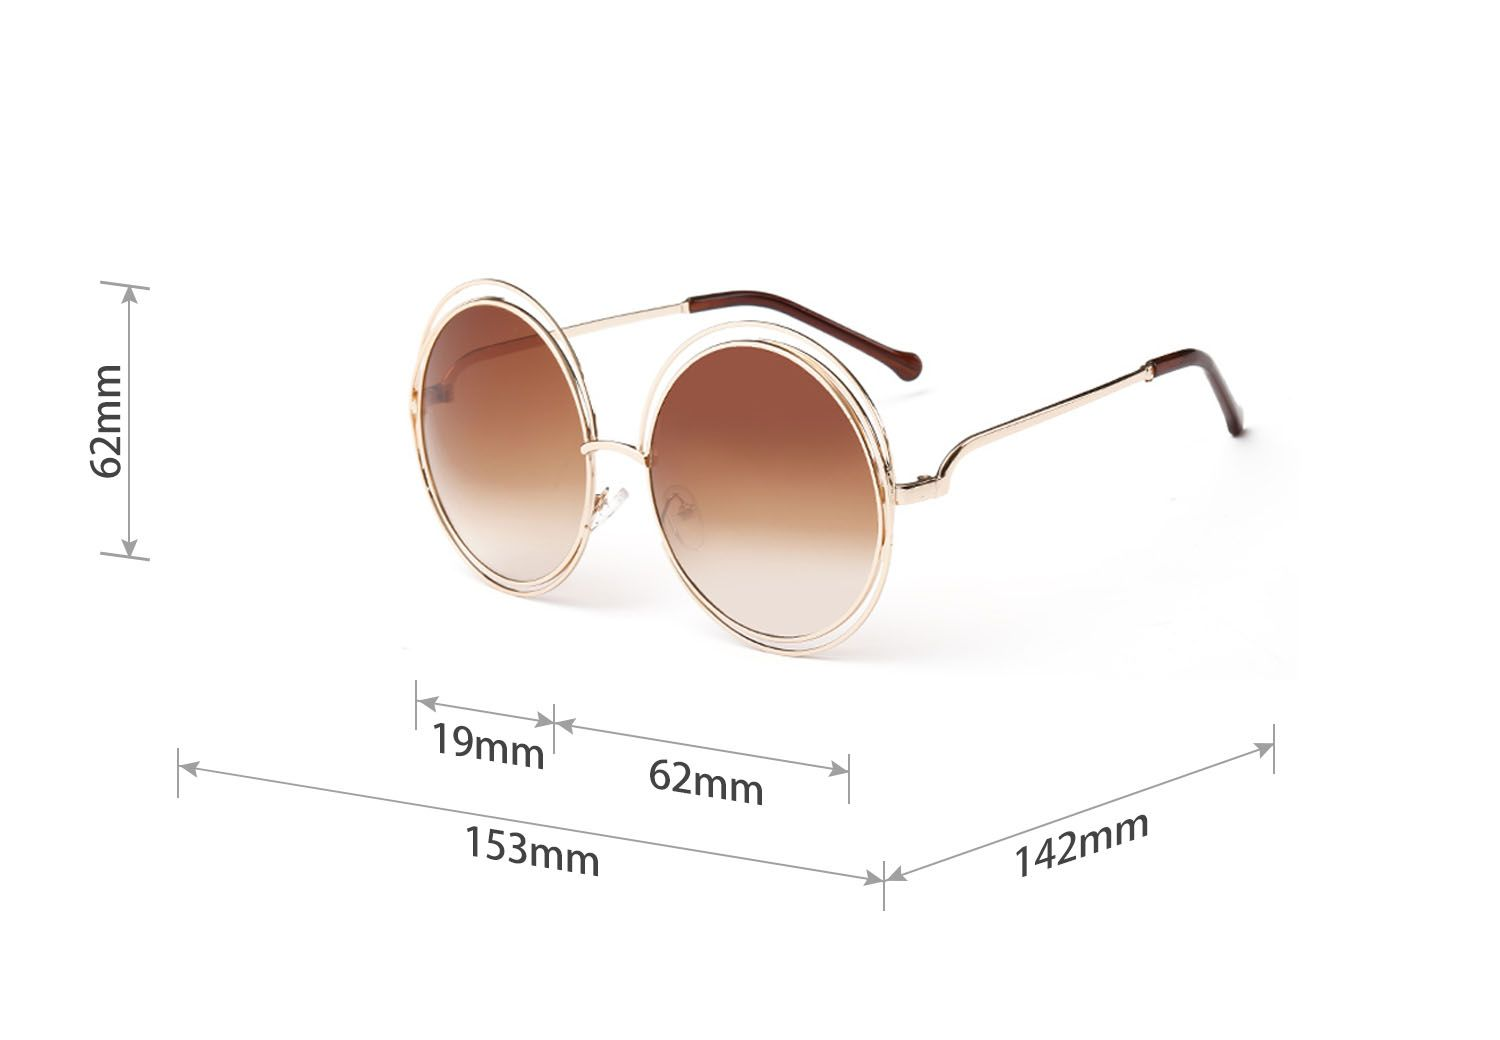 The Size Of 8048 Sunglasses Embossed Printing Sunglasses Wildfox